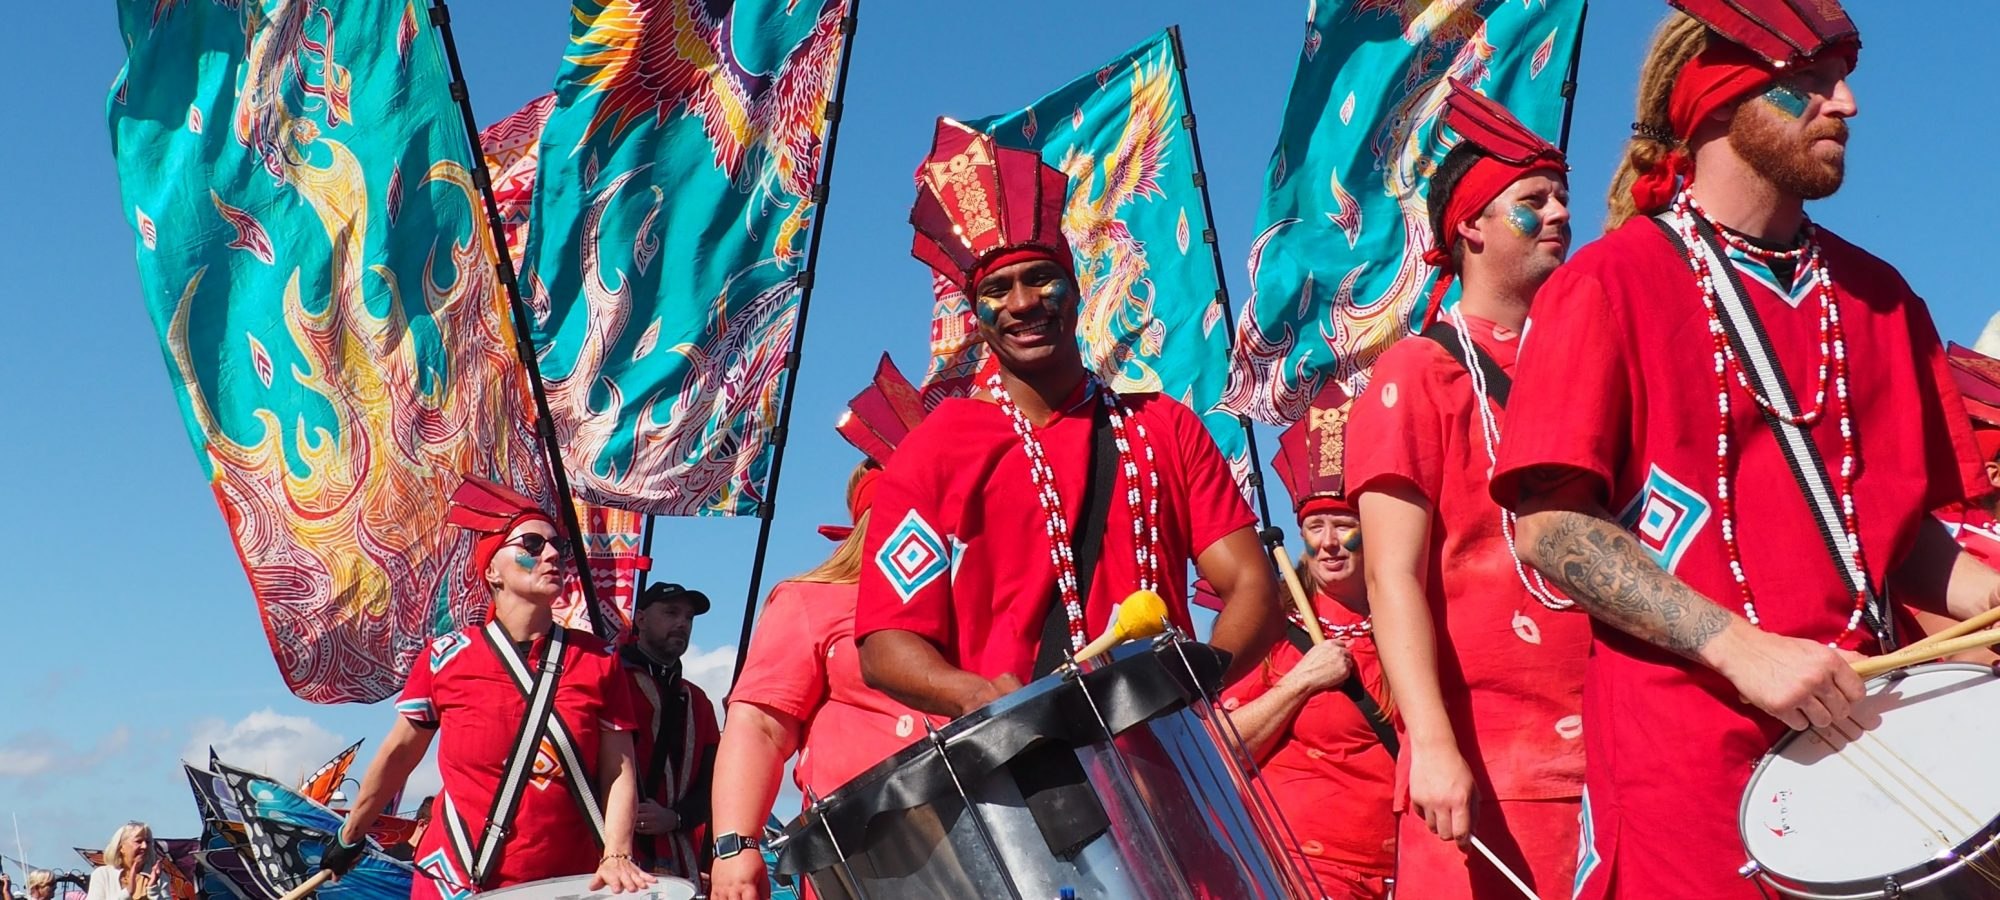 drummers in a parade with flags